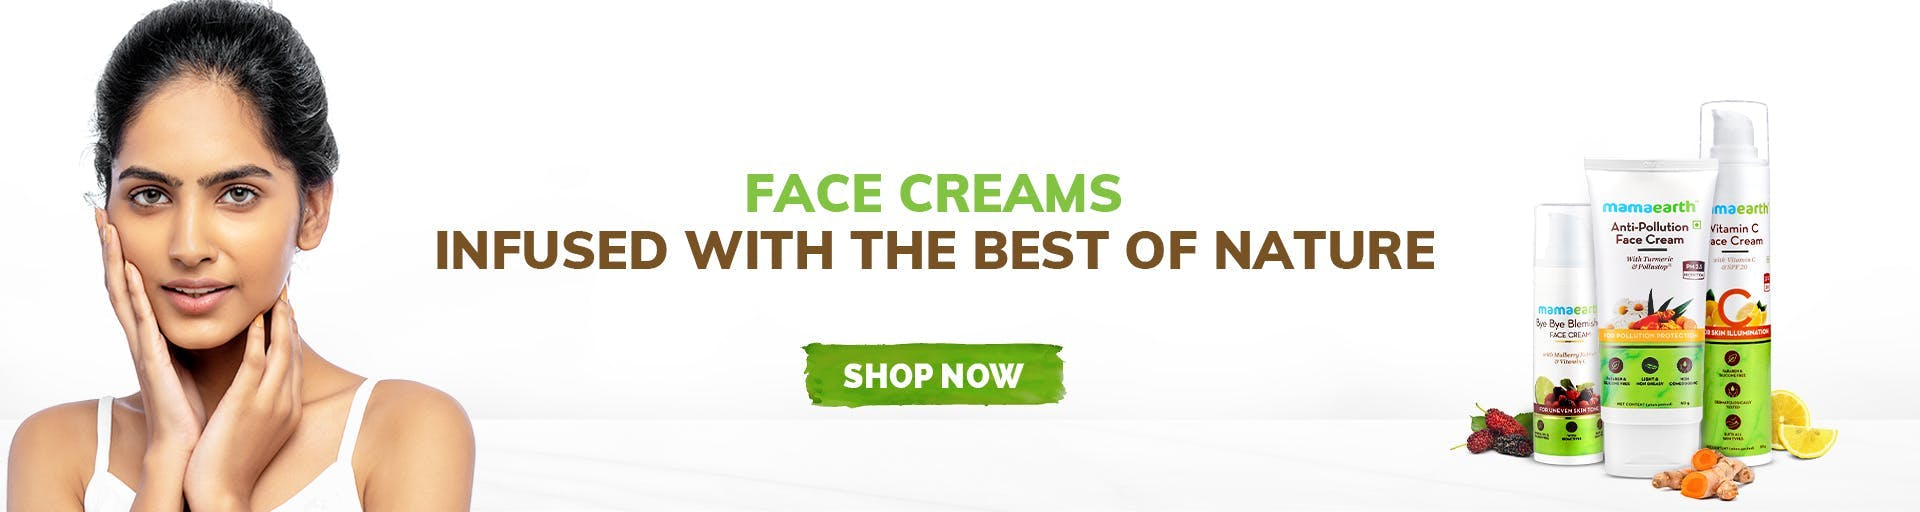 mamaearth.in - Face Creams starting at just ₹349